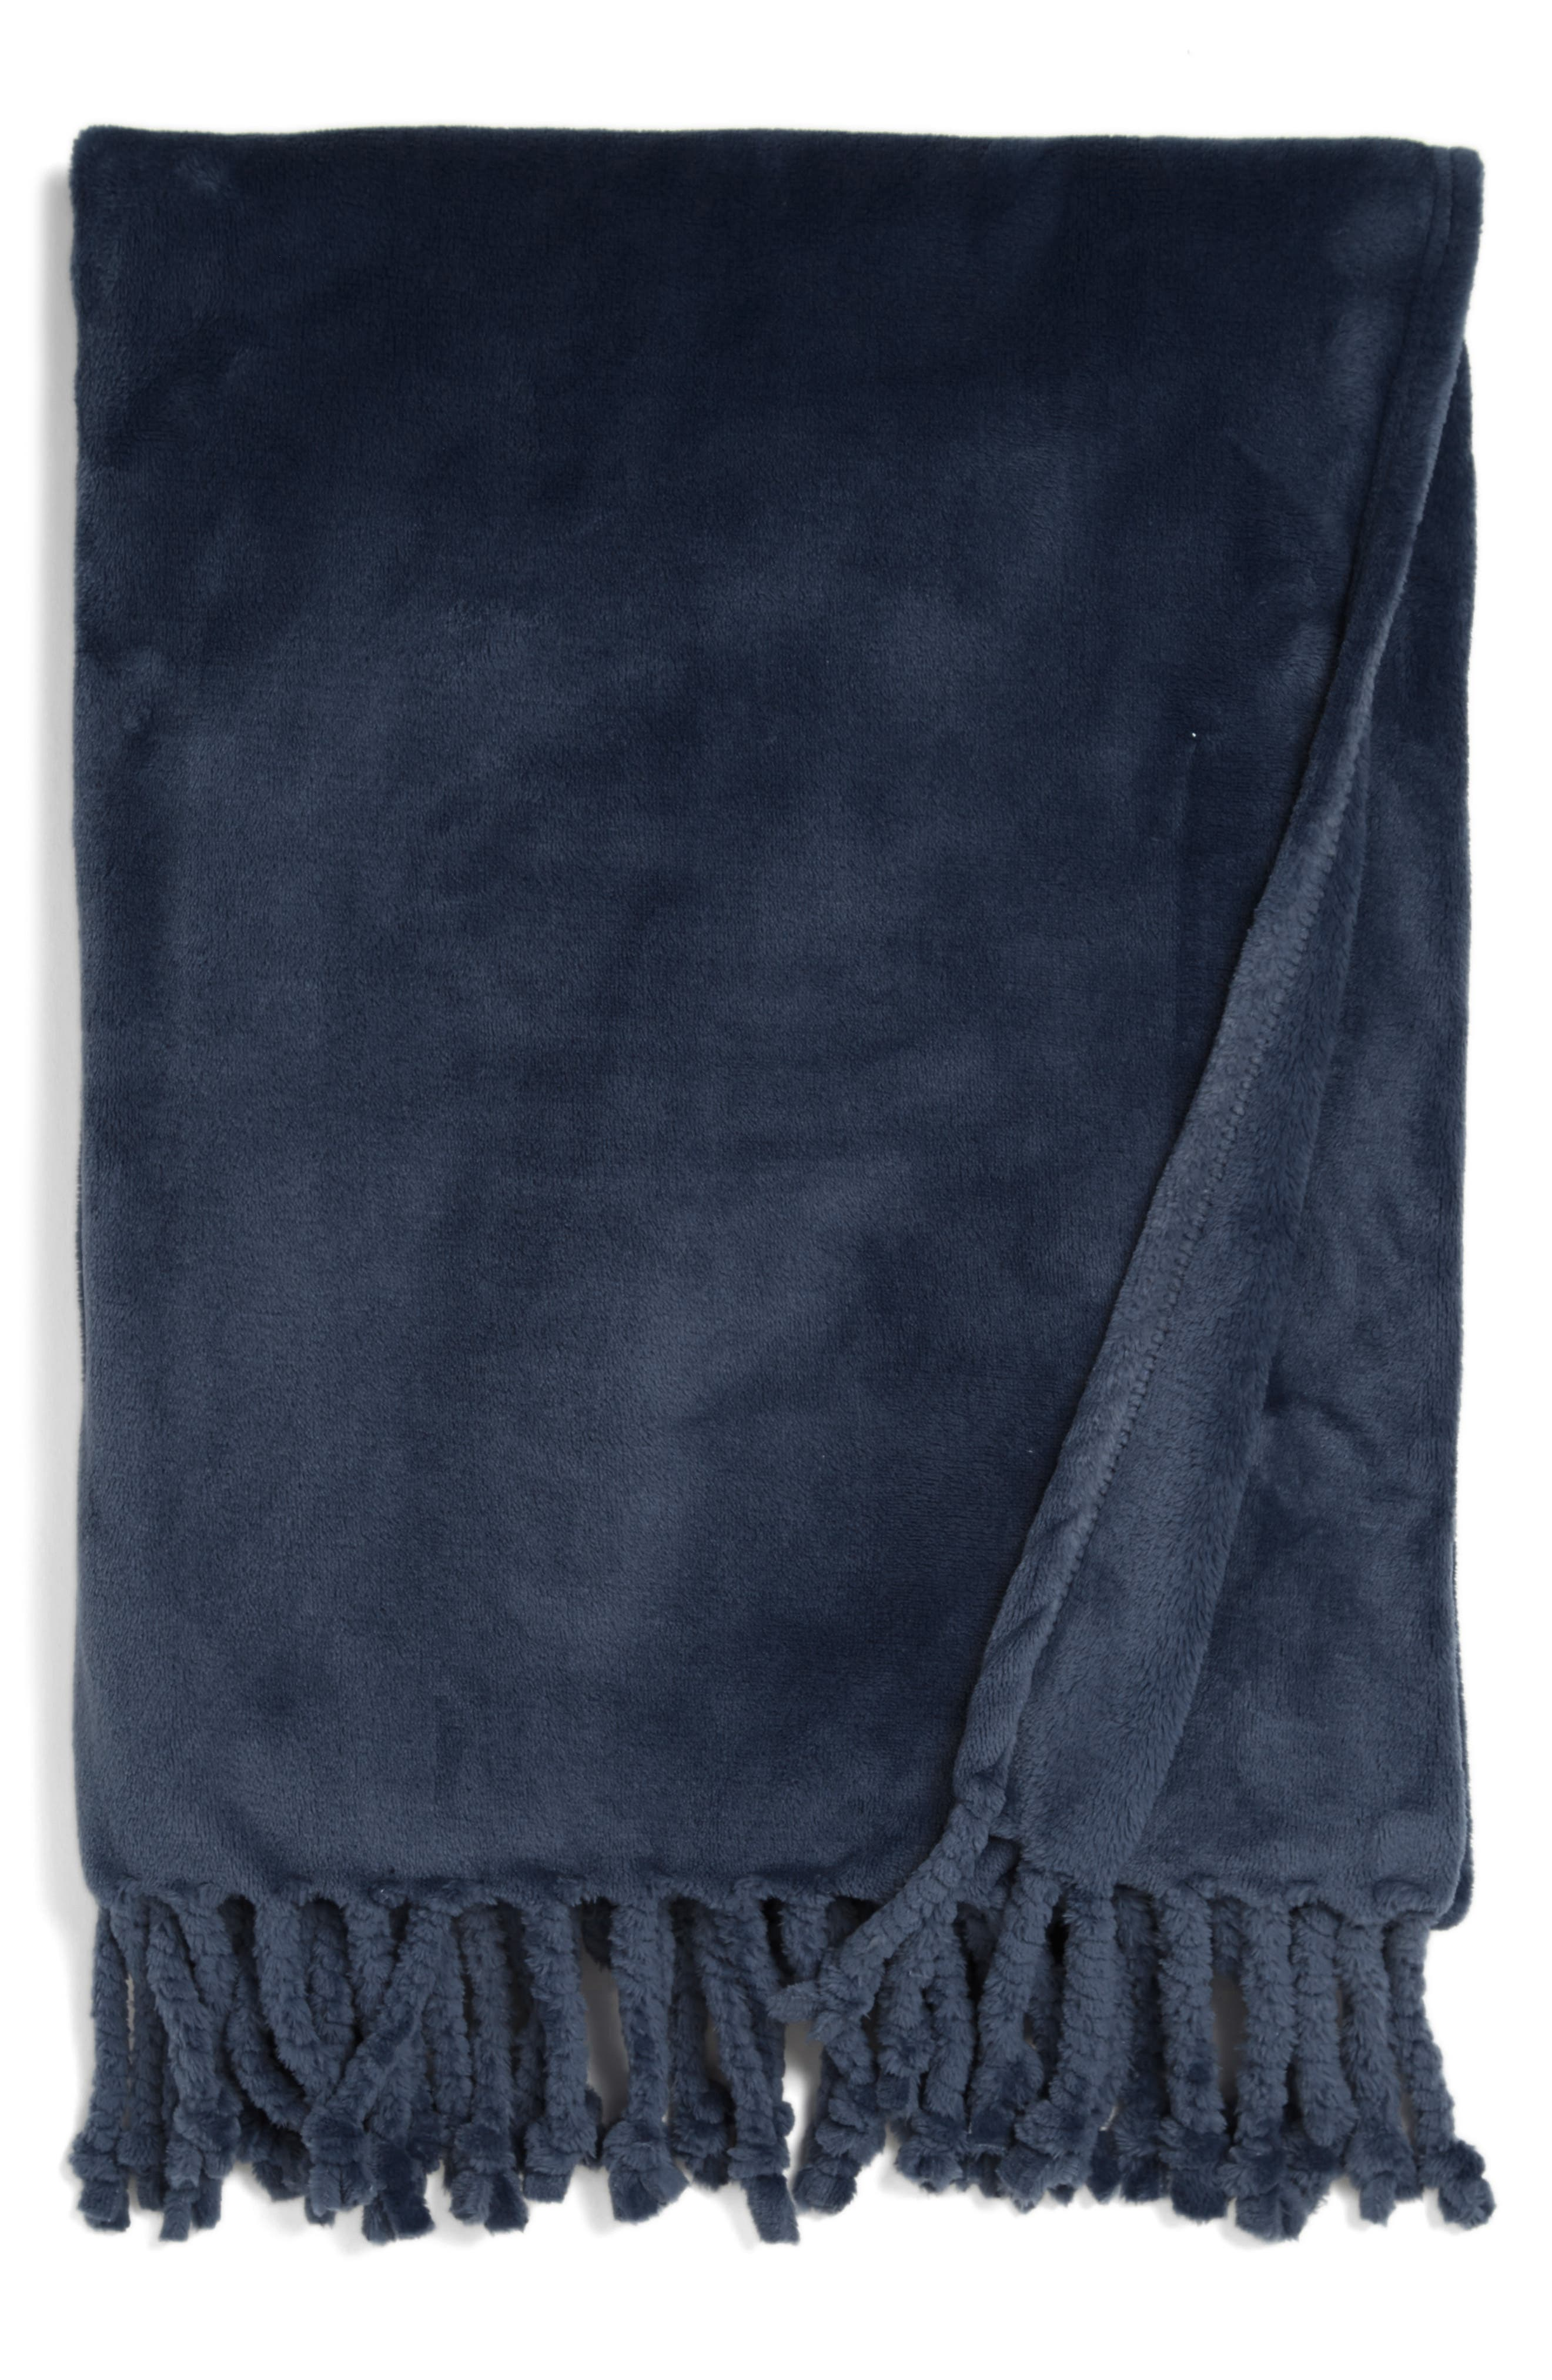 Kennebunk Bliss Plush Throw,                         Main,                         color, NAVY BLUE